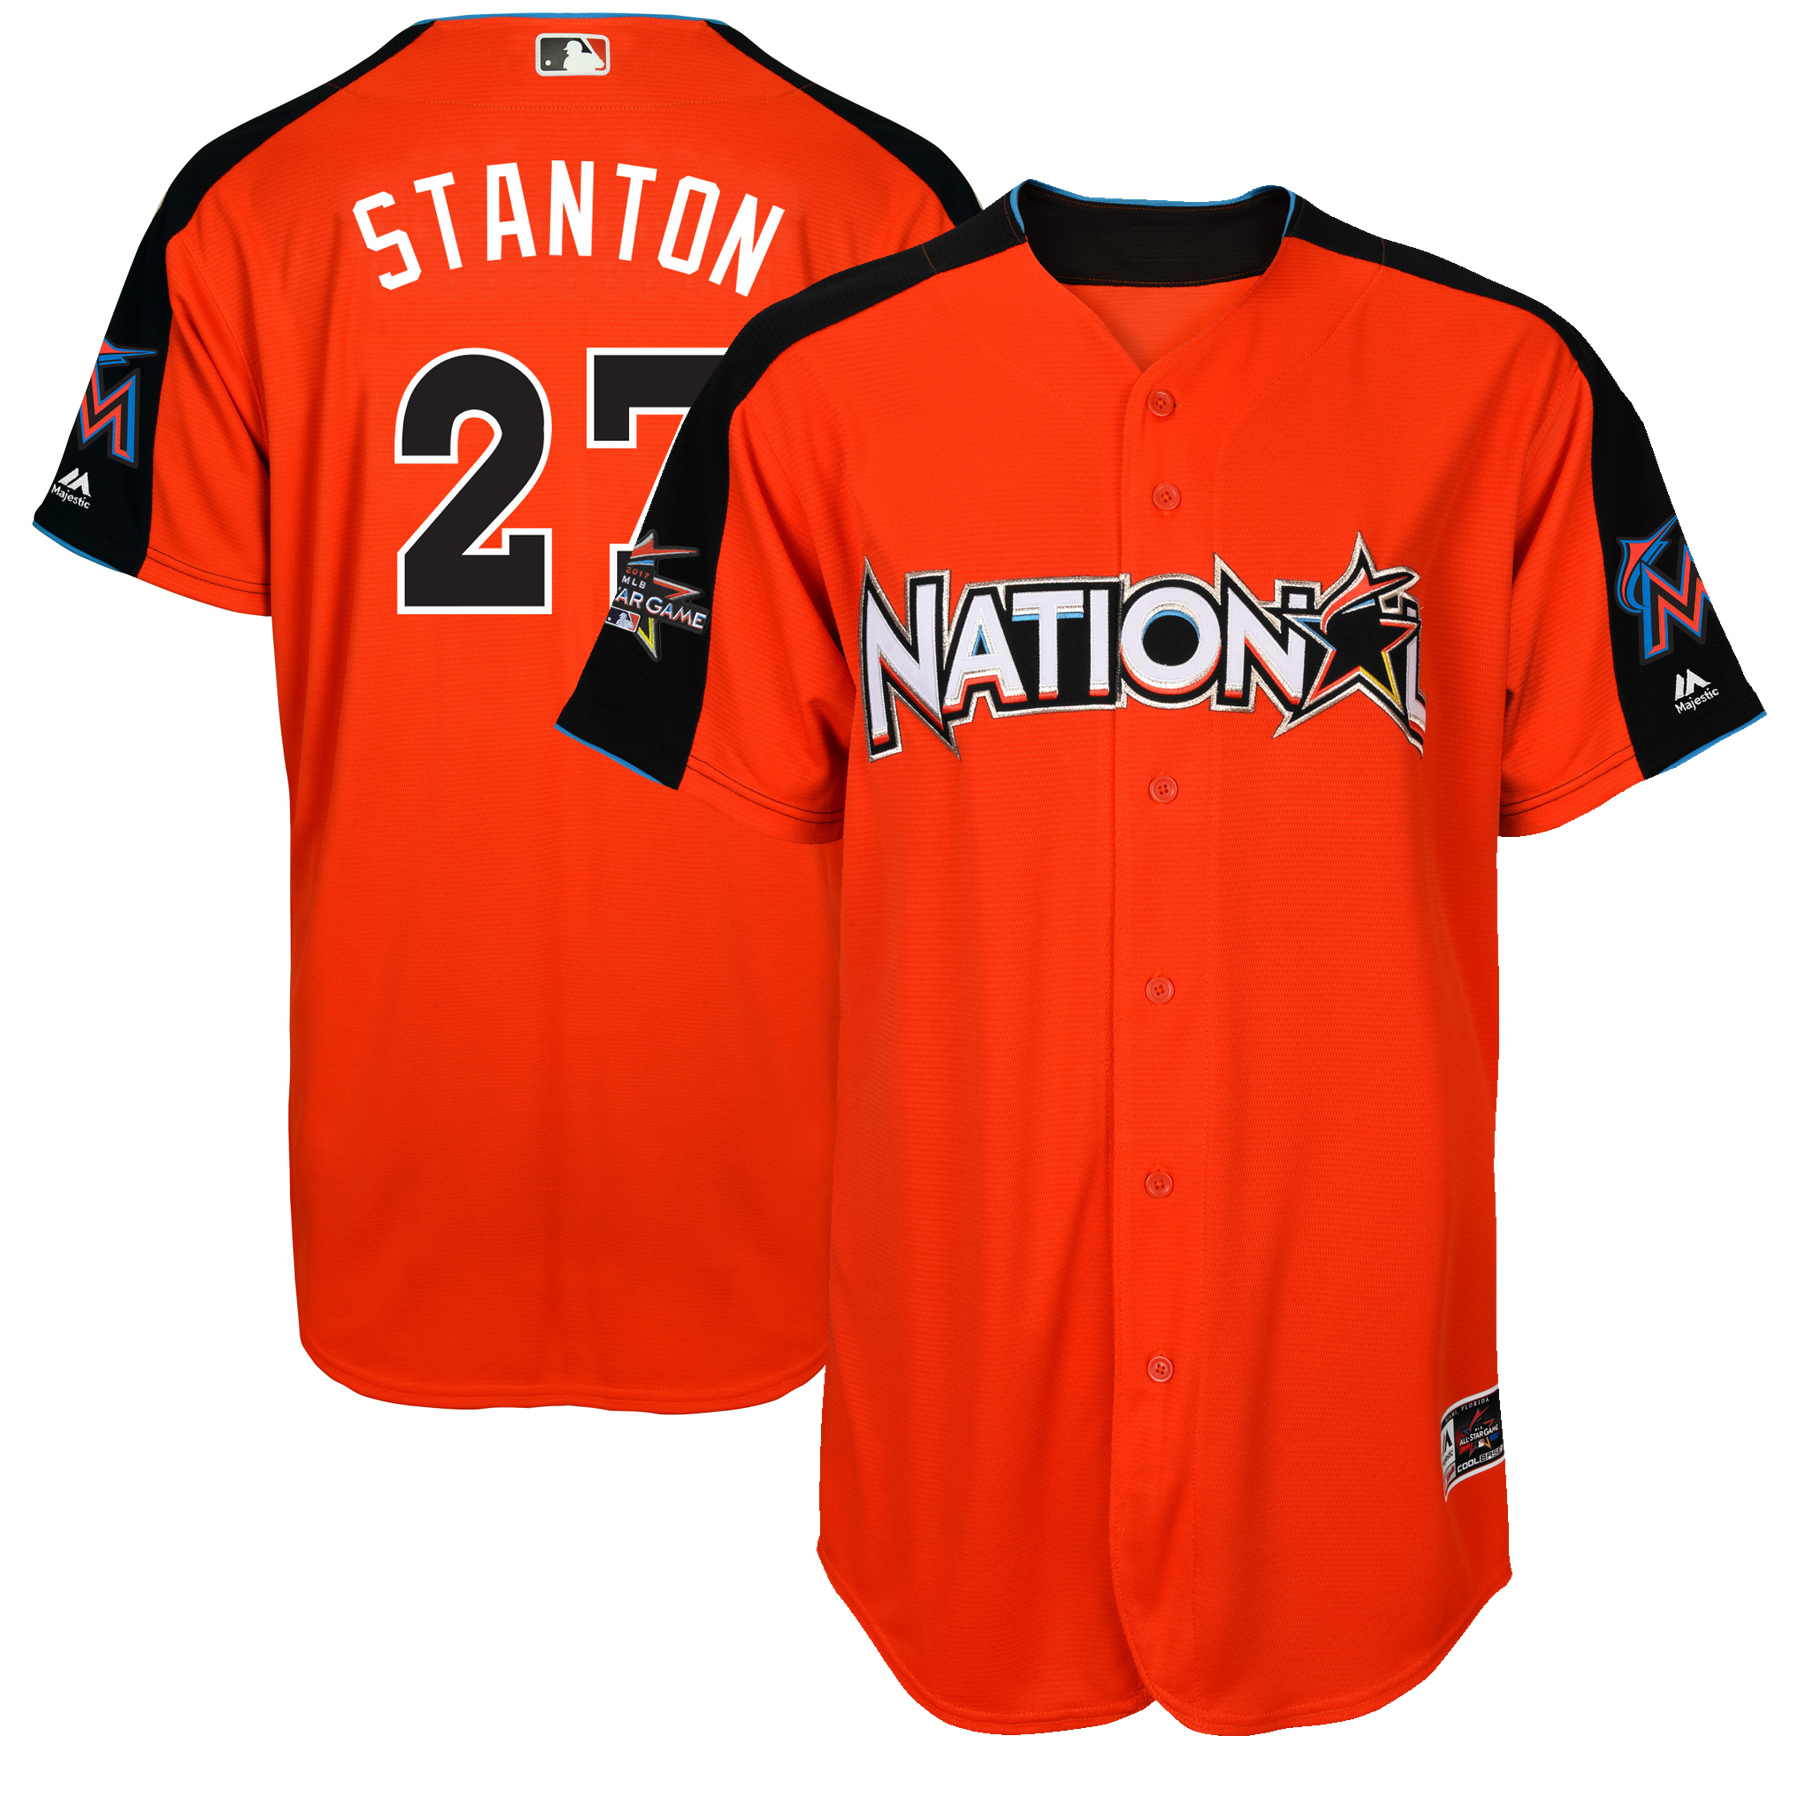 Giancarlo Stanton National League Majestic 2017 MLB All-Star Game Authentic Home Run Derby Jersey - Orange